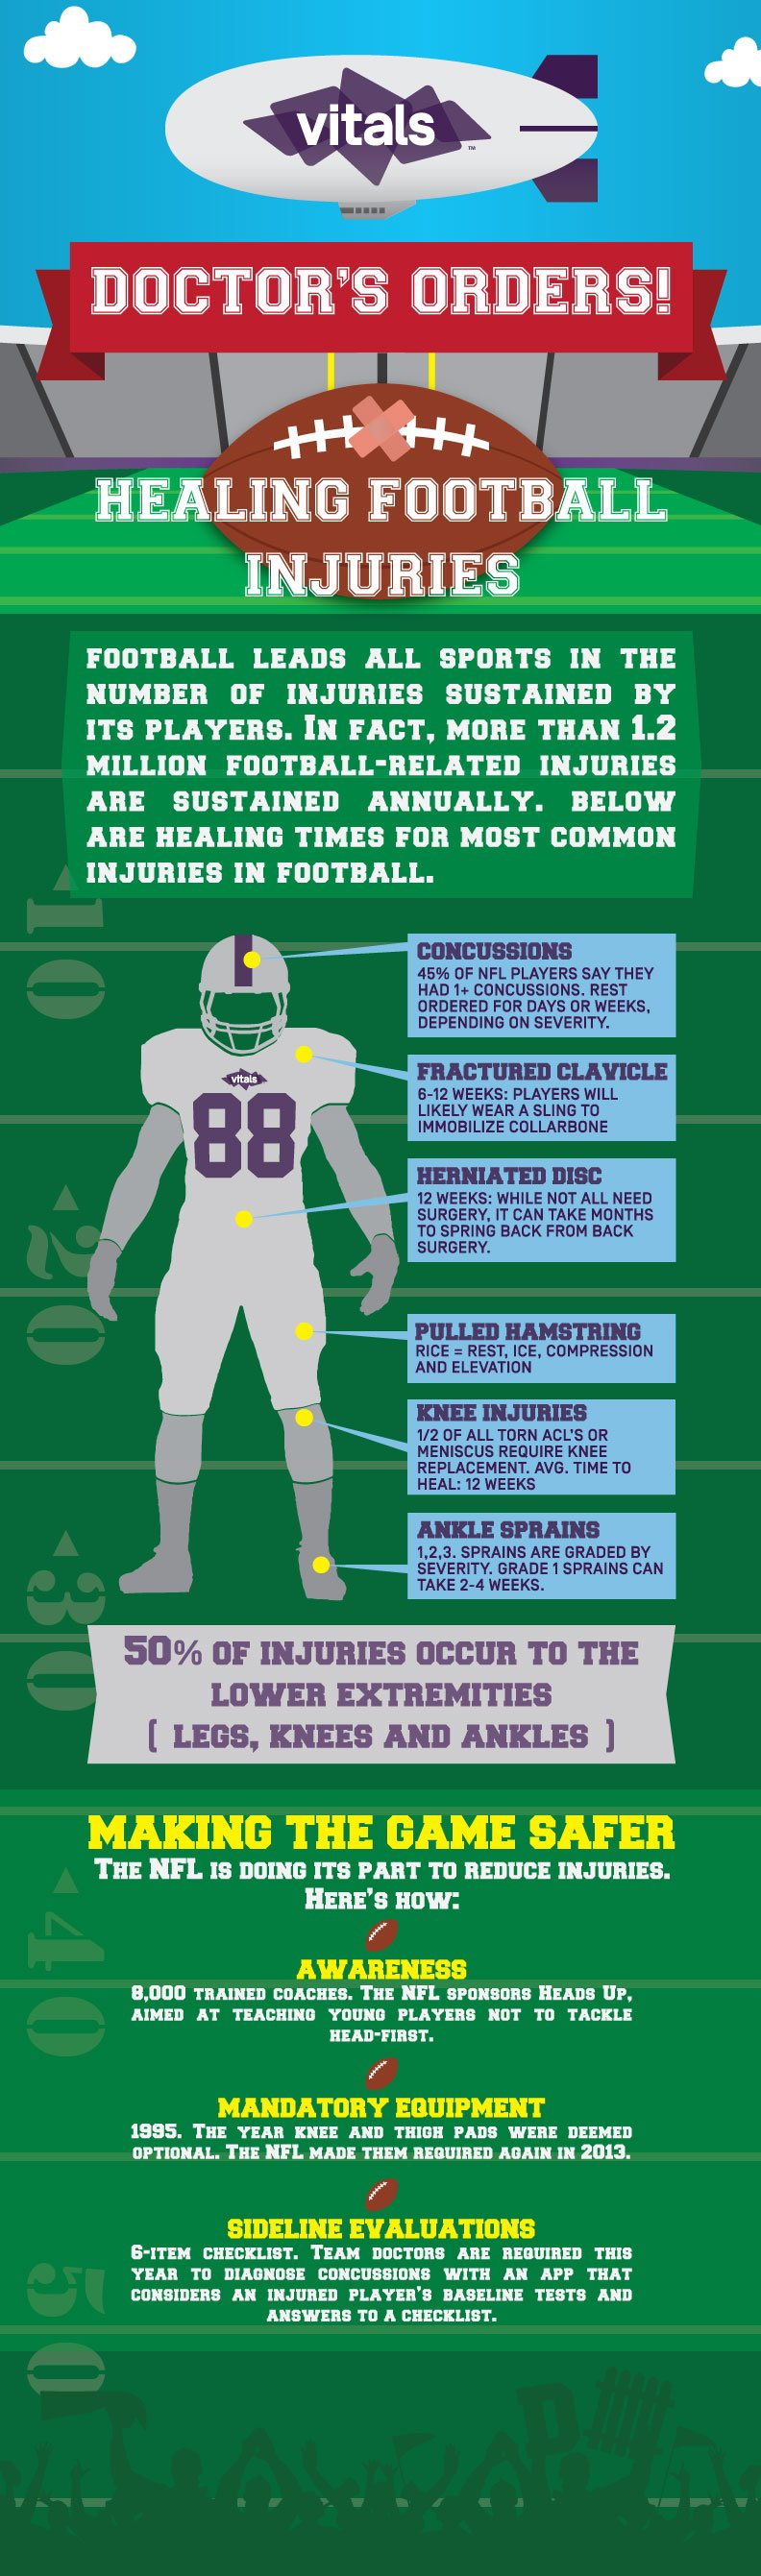 Superbowl XLVIII Ever wonder how the teams' doctors rank